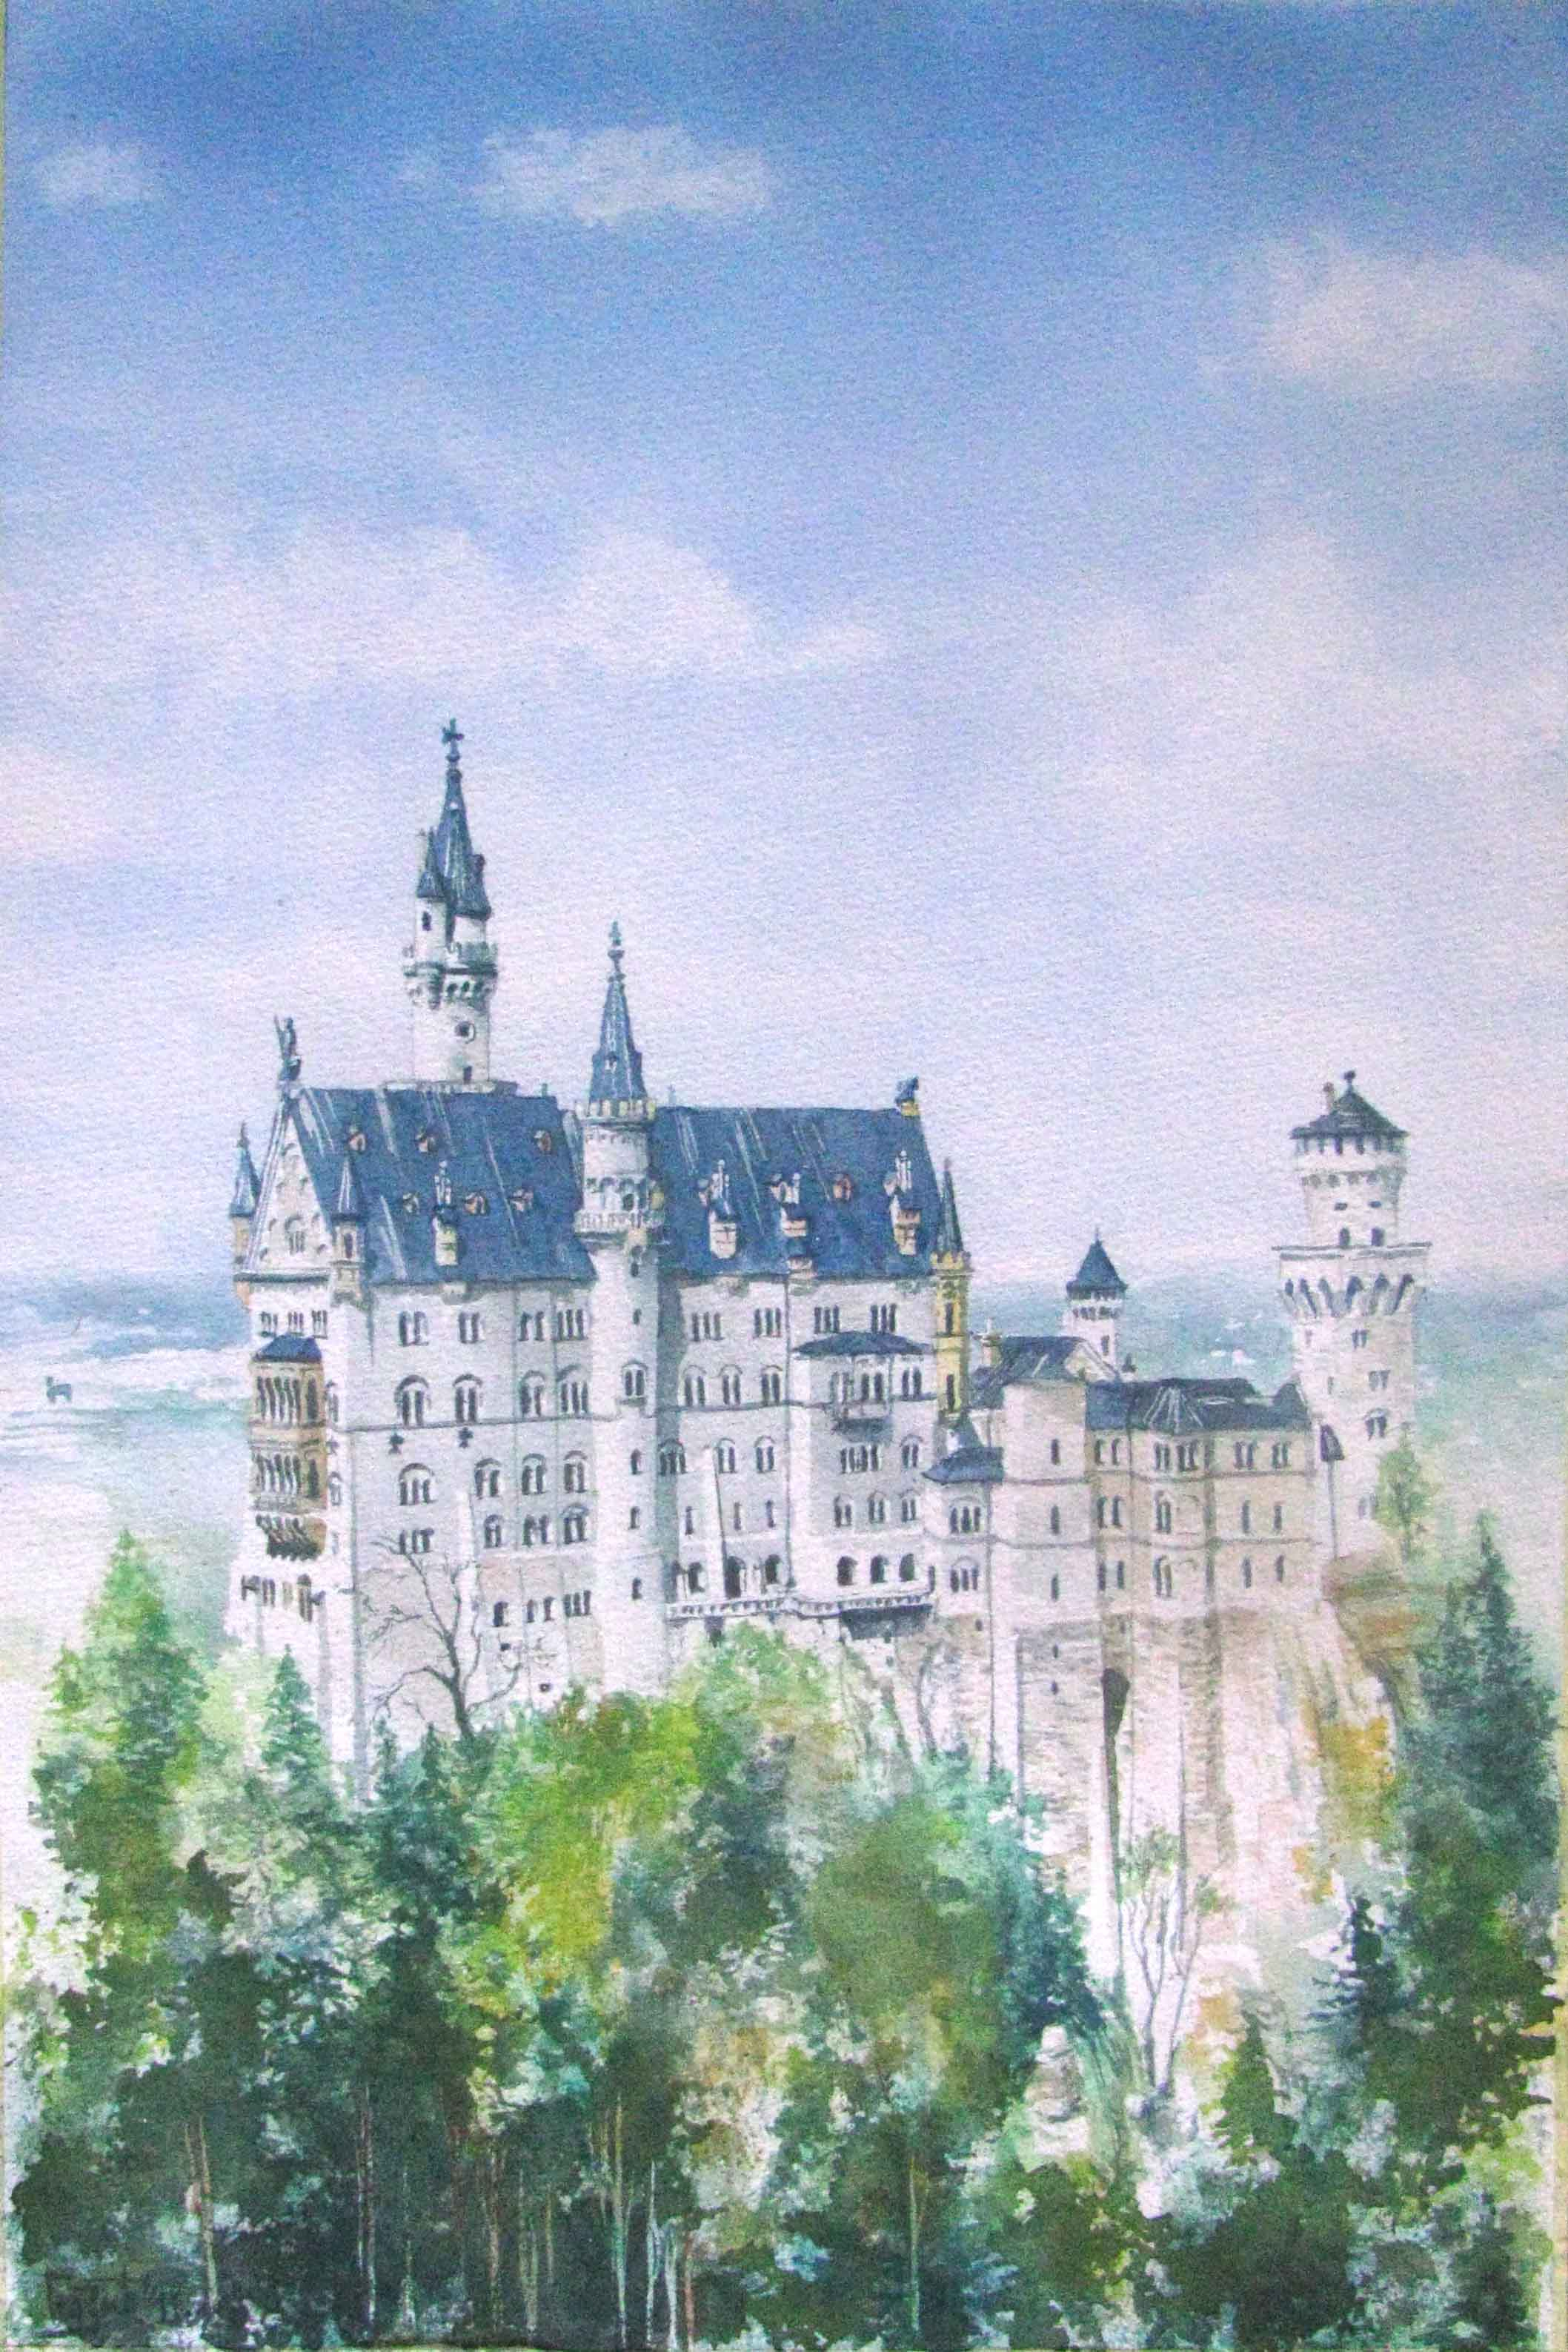 Neuschwanstein Castle Watercolor On Paper Glozic Milan